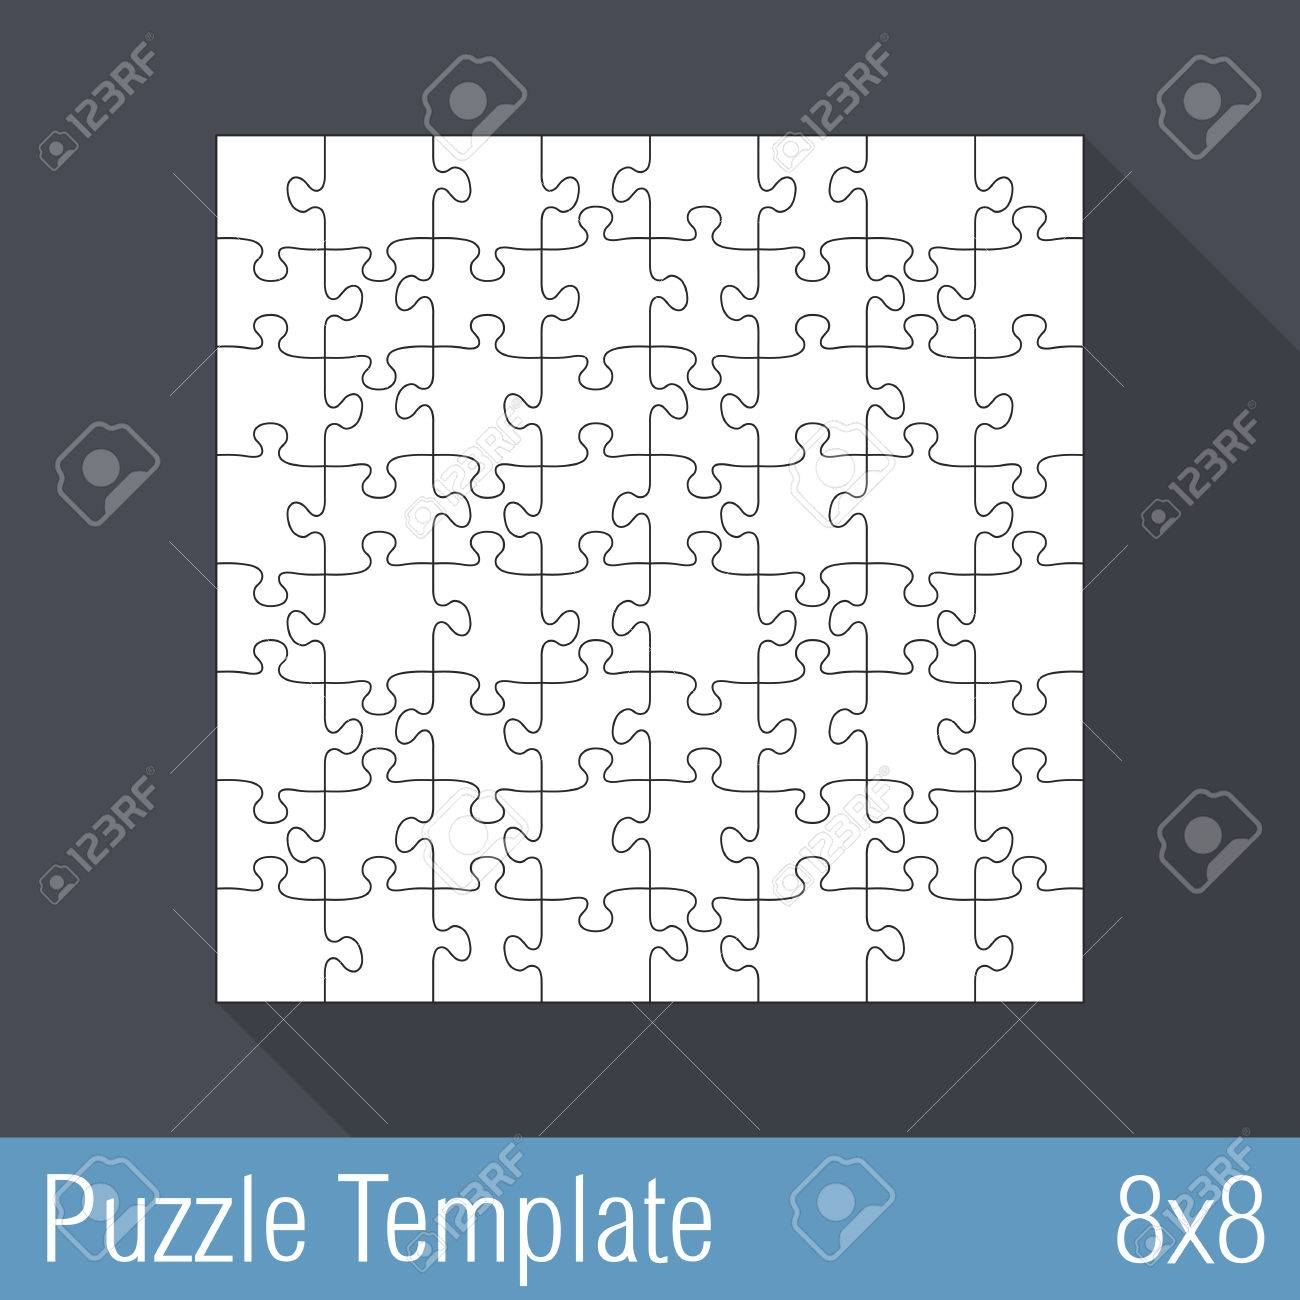 Square Jigsaw Puzzle Template 8x8 Pieces Royalty Free Cliparts ...